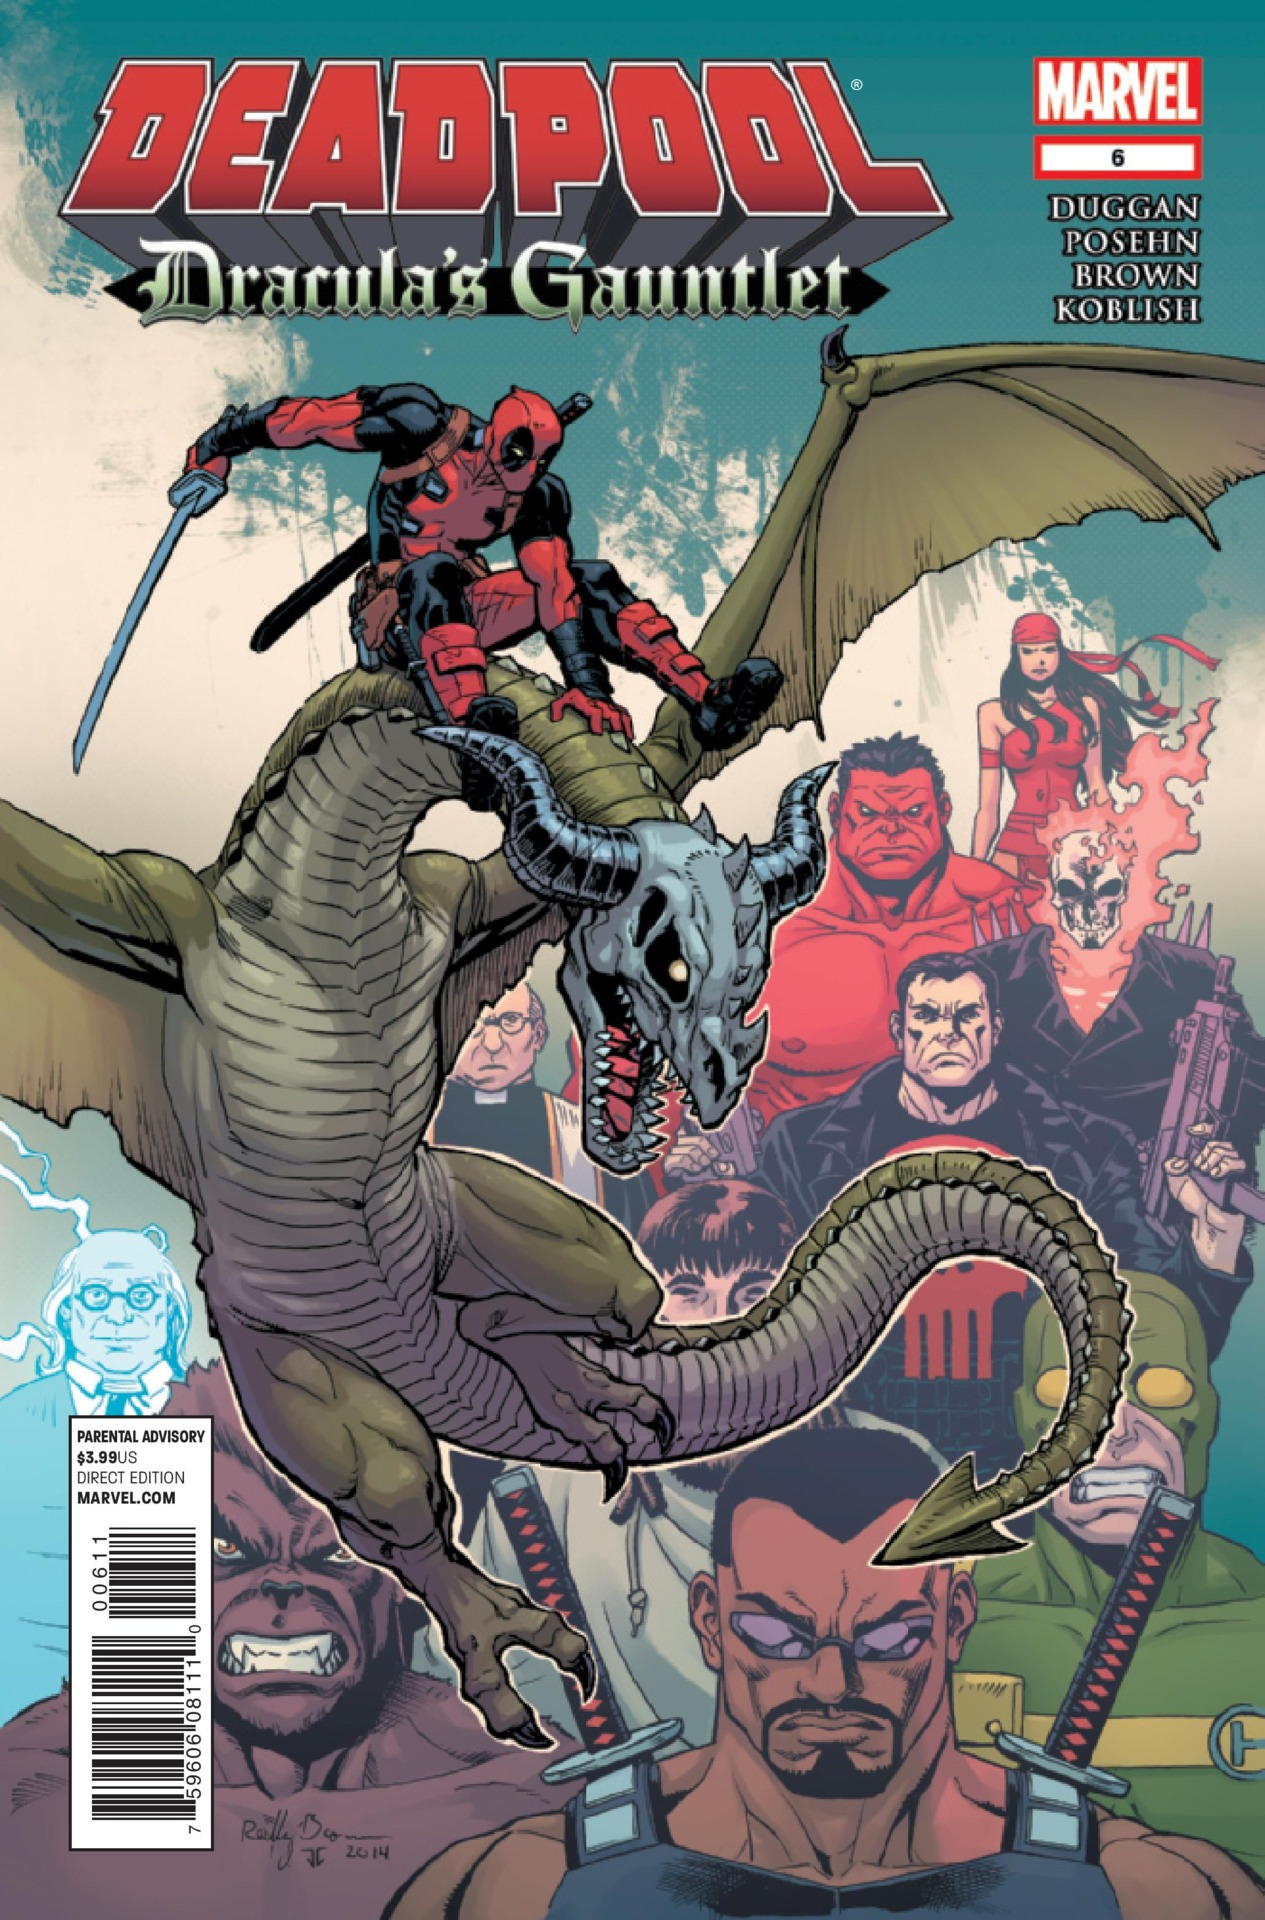 Deadpool: Dracula's Gauntlet Vol 1 6